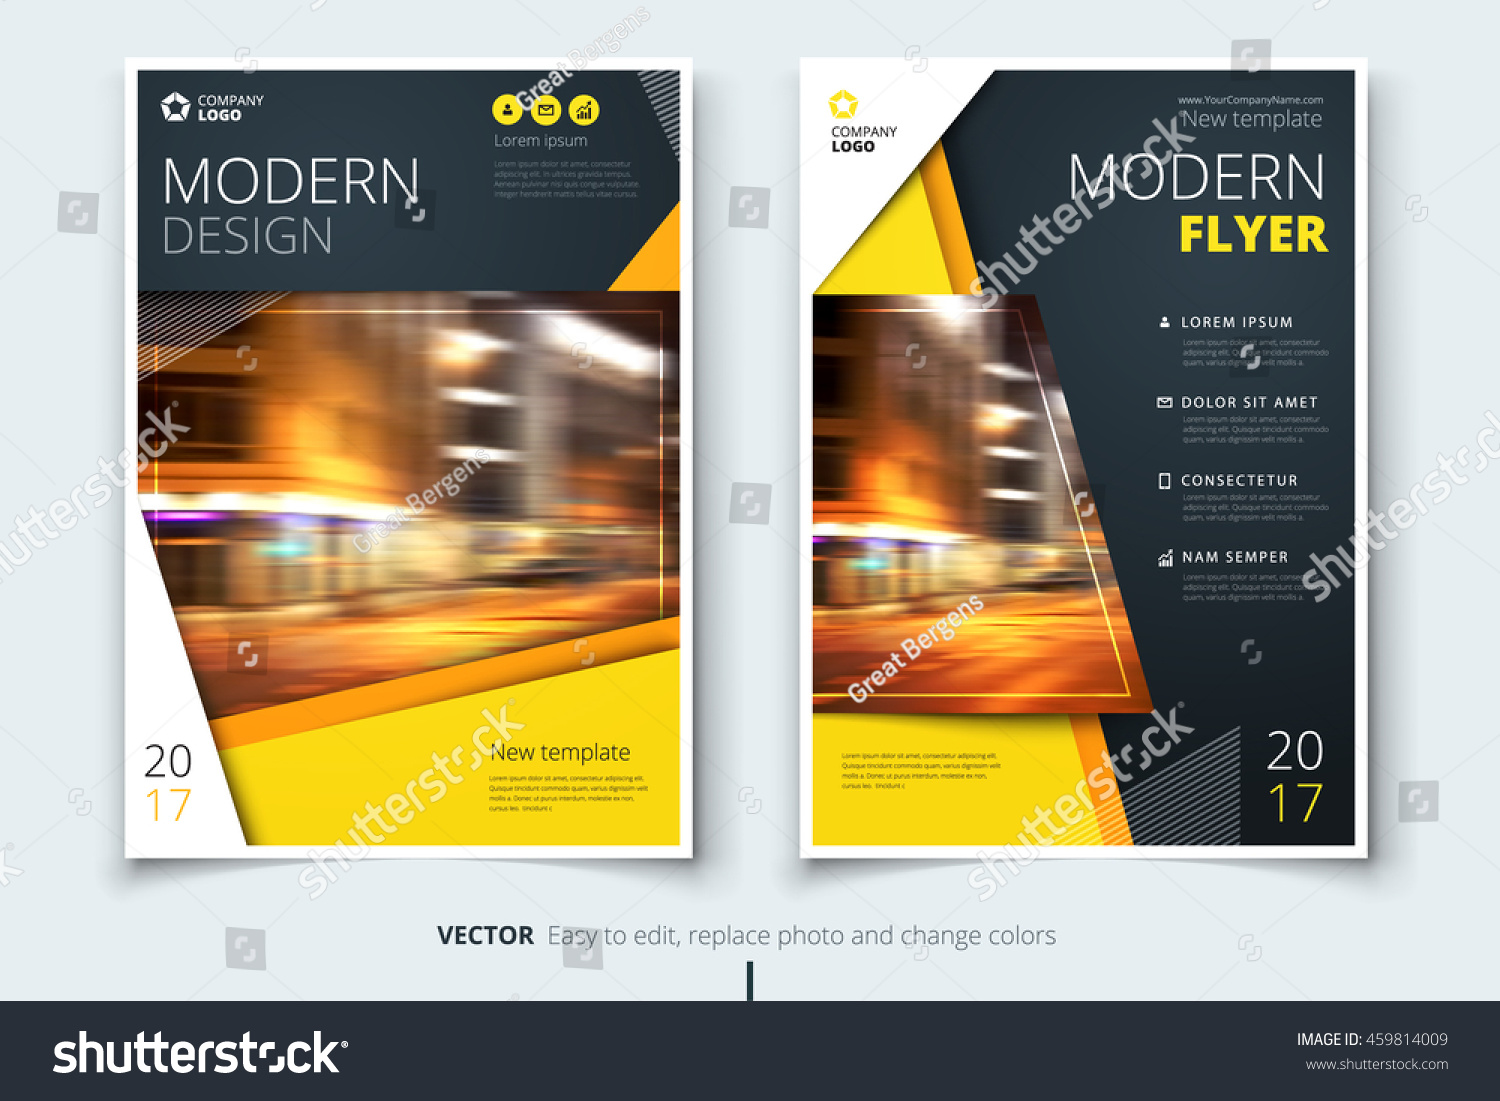 Yellow modern flyer design corporate business stock vector for Modern brochure design templates